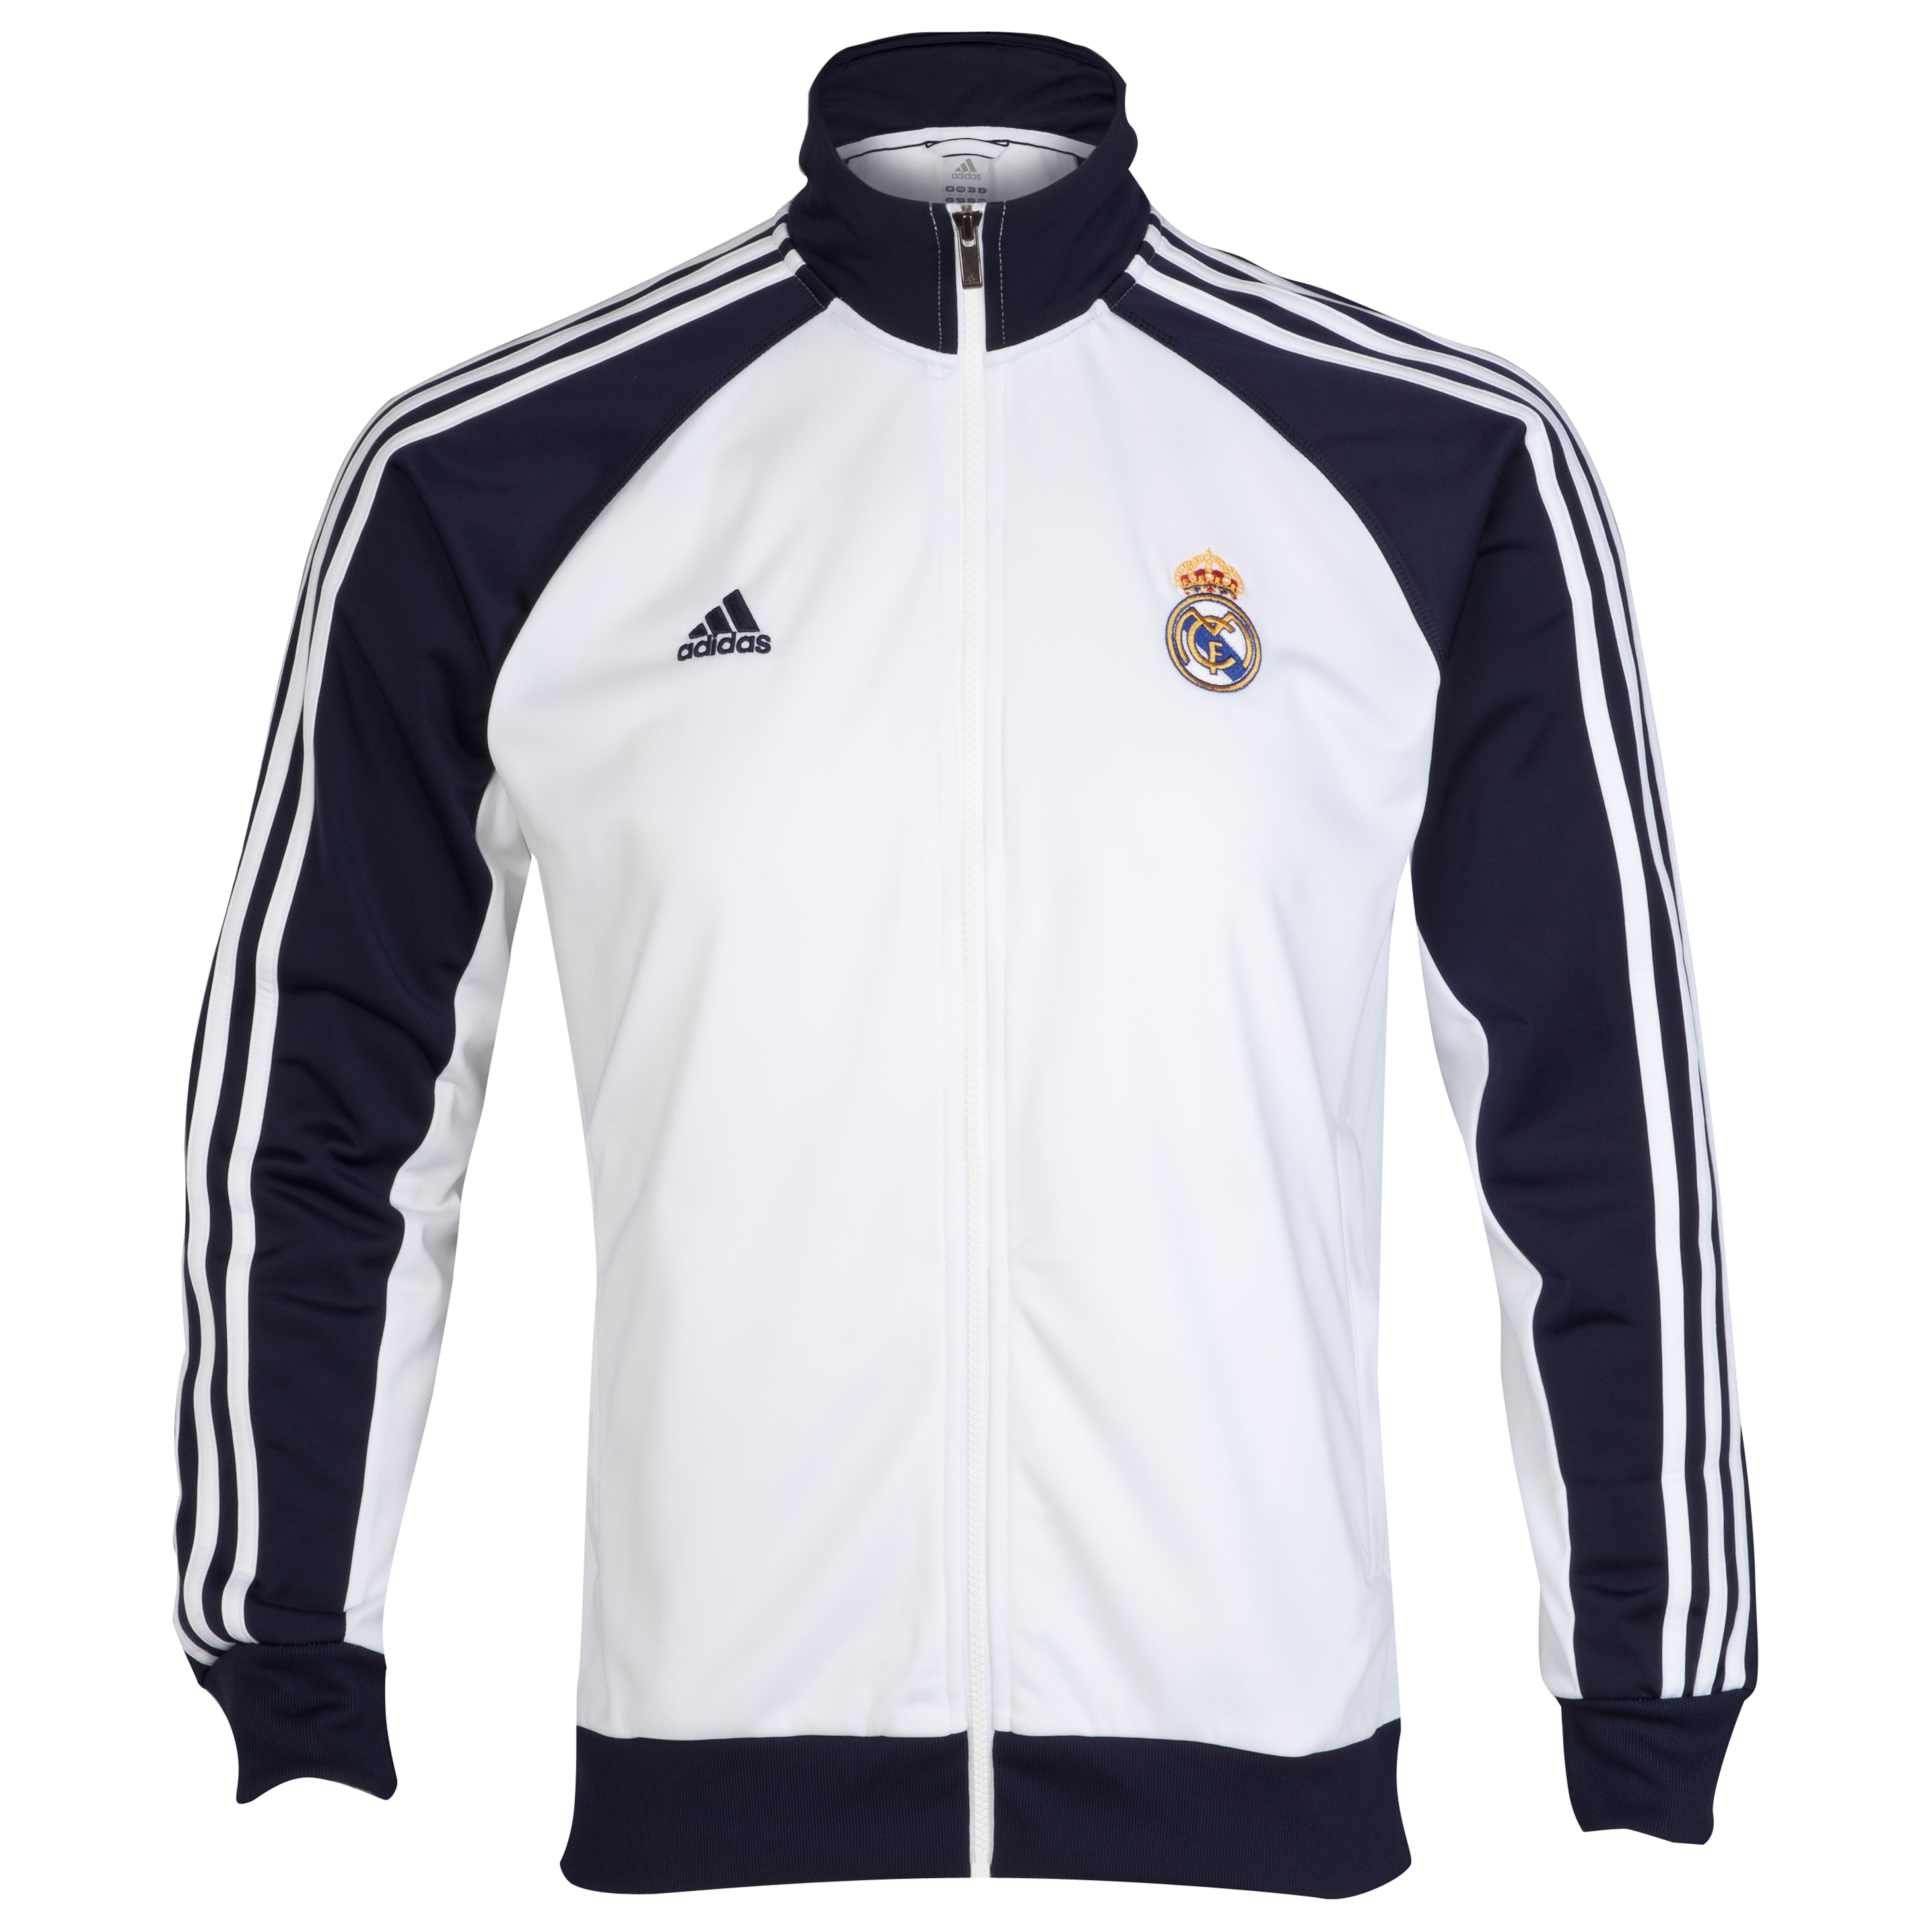 Chaqueta de Entrenamiento Real Madrid - Blanco/Azul